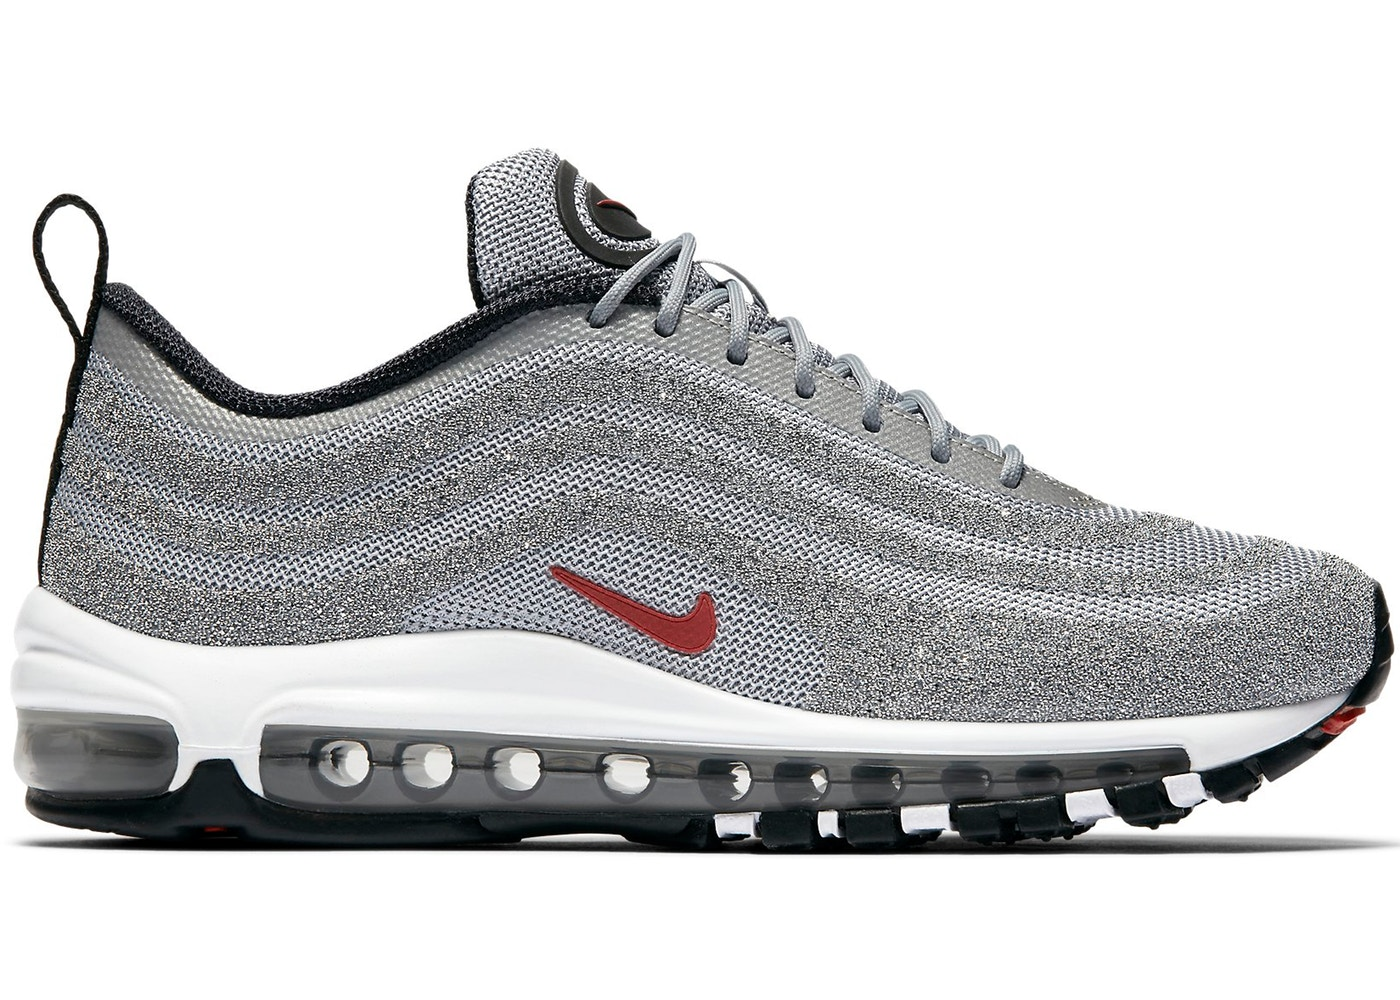 low priced 42278 7100d Air Max 97 LX Swarovski Silver Bullet (W) - 927508-002